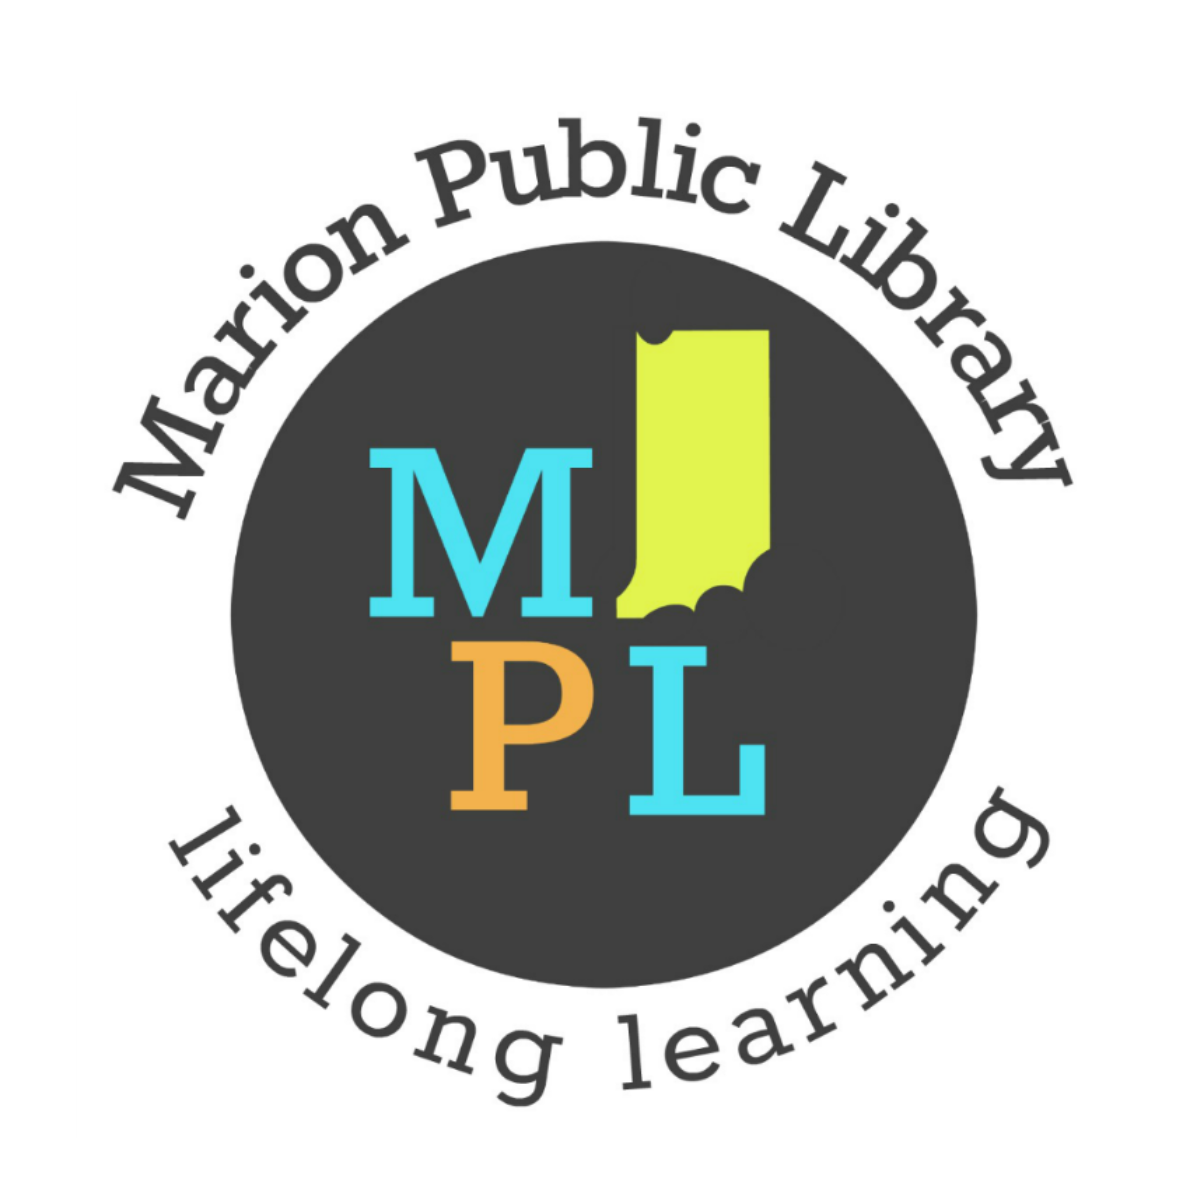 Marion Public Library - the official library of Marion and Grant County.